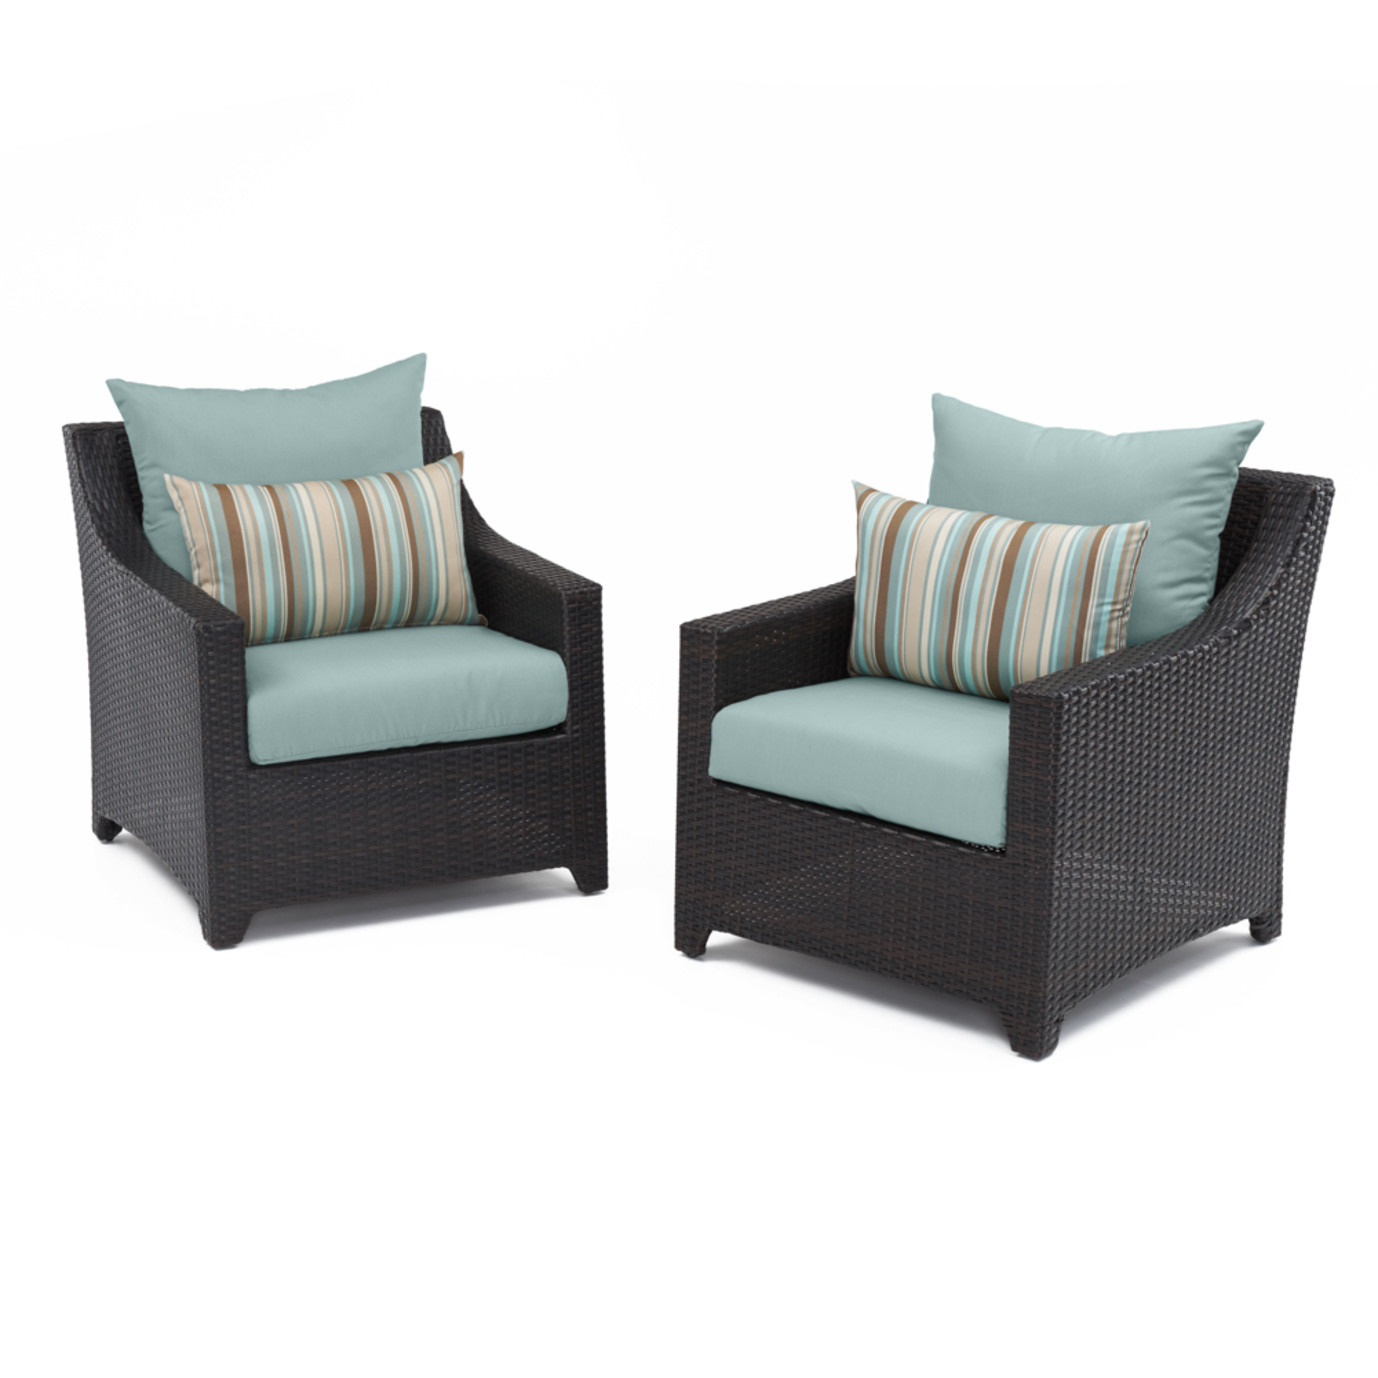 Deco™ Club Chairs - Bliss Blue